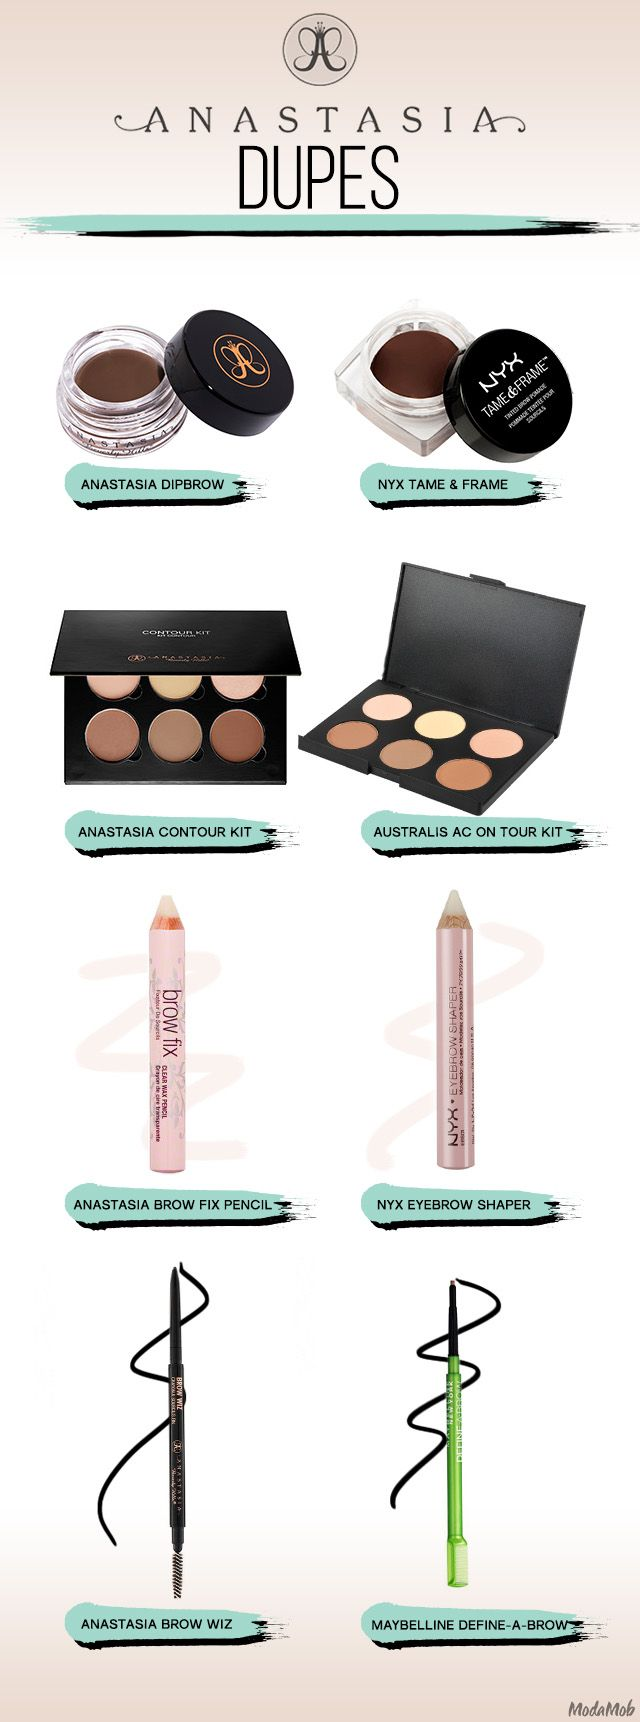 We Found the Best Drugstore Dupes for Anastasia Beverly Hills   Modamob